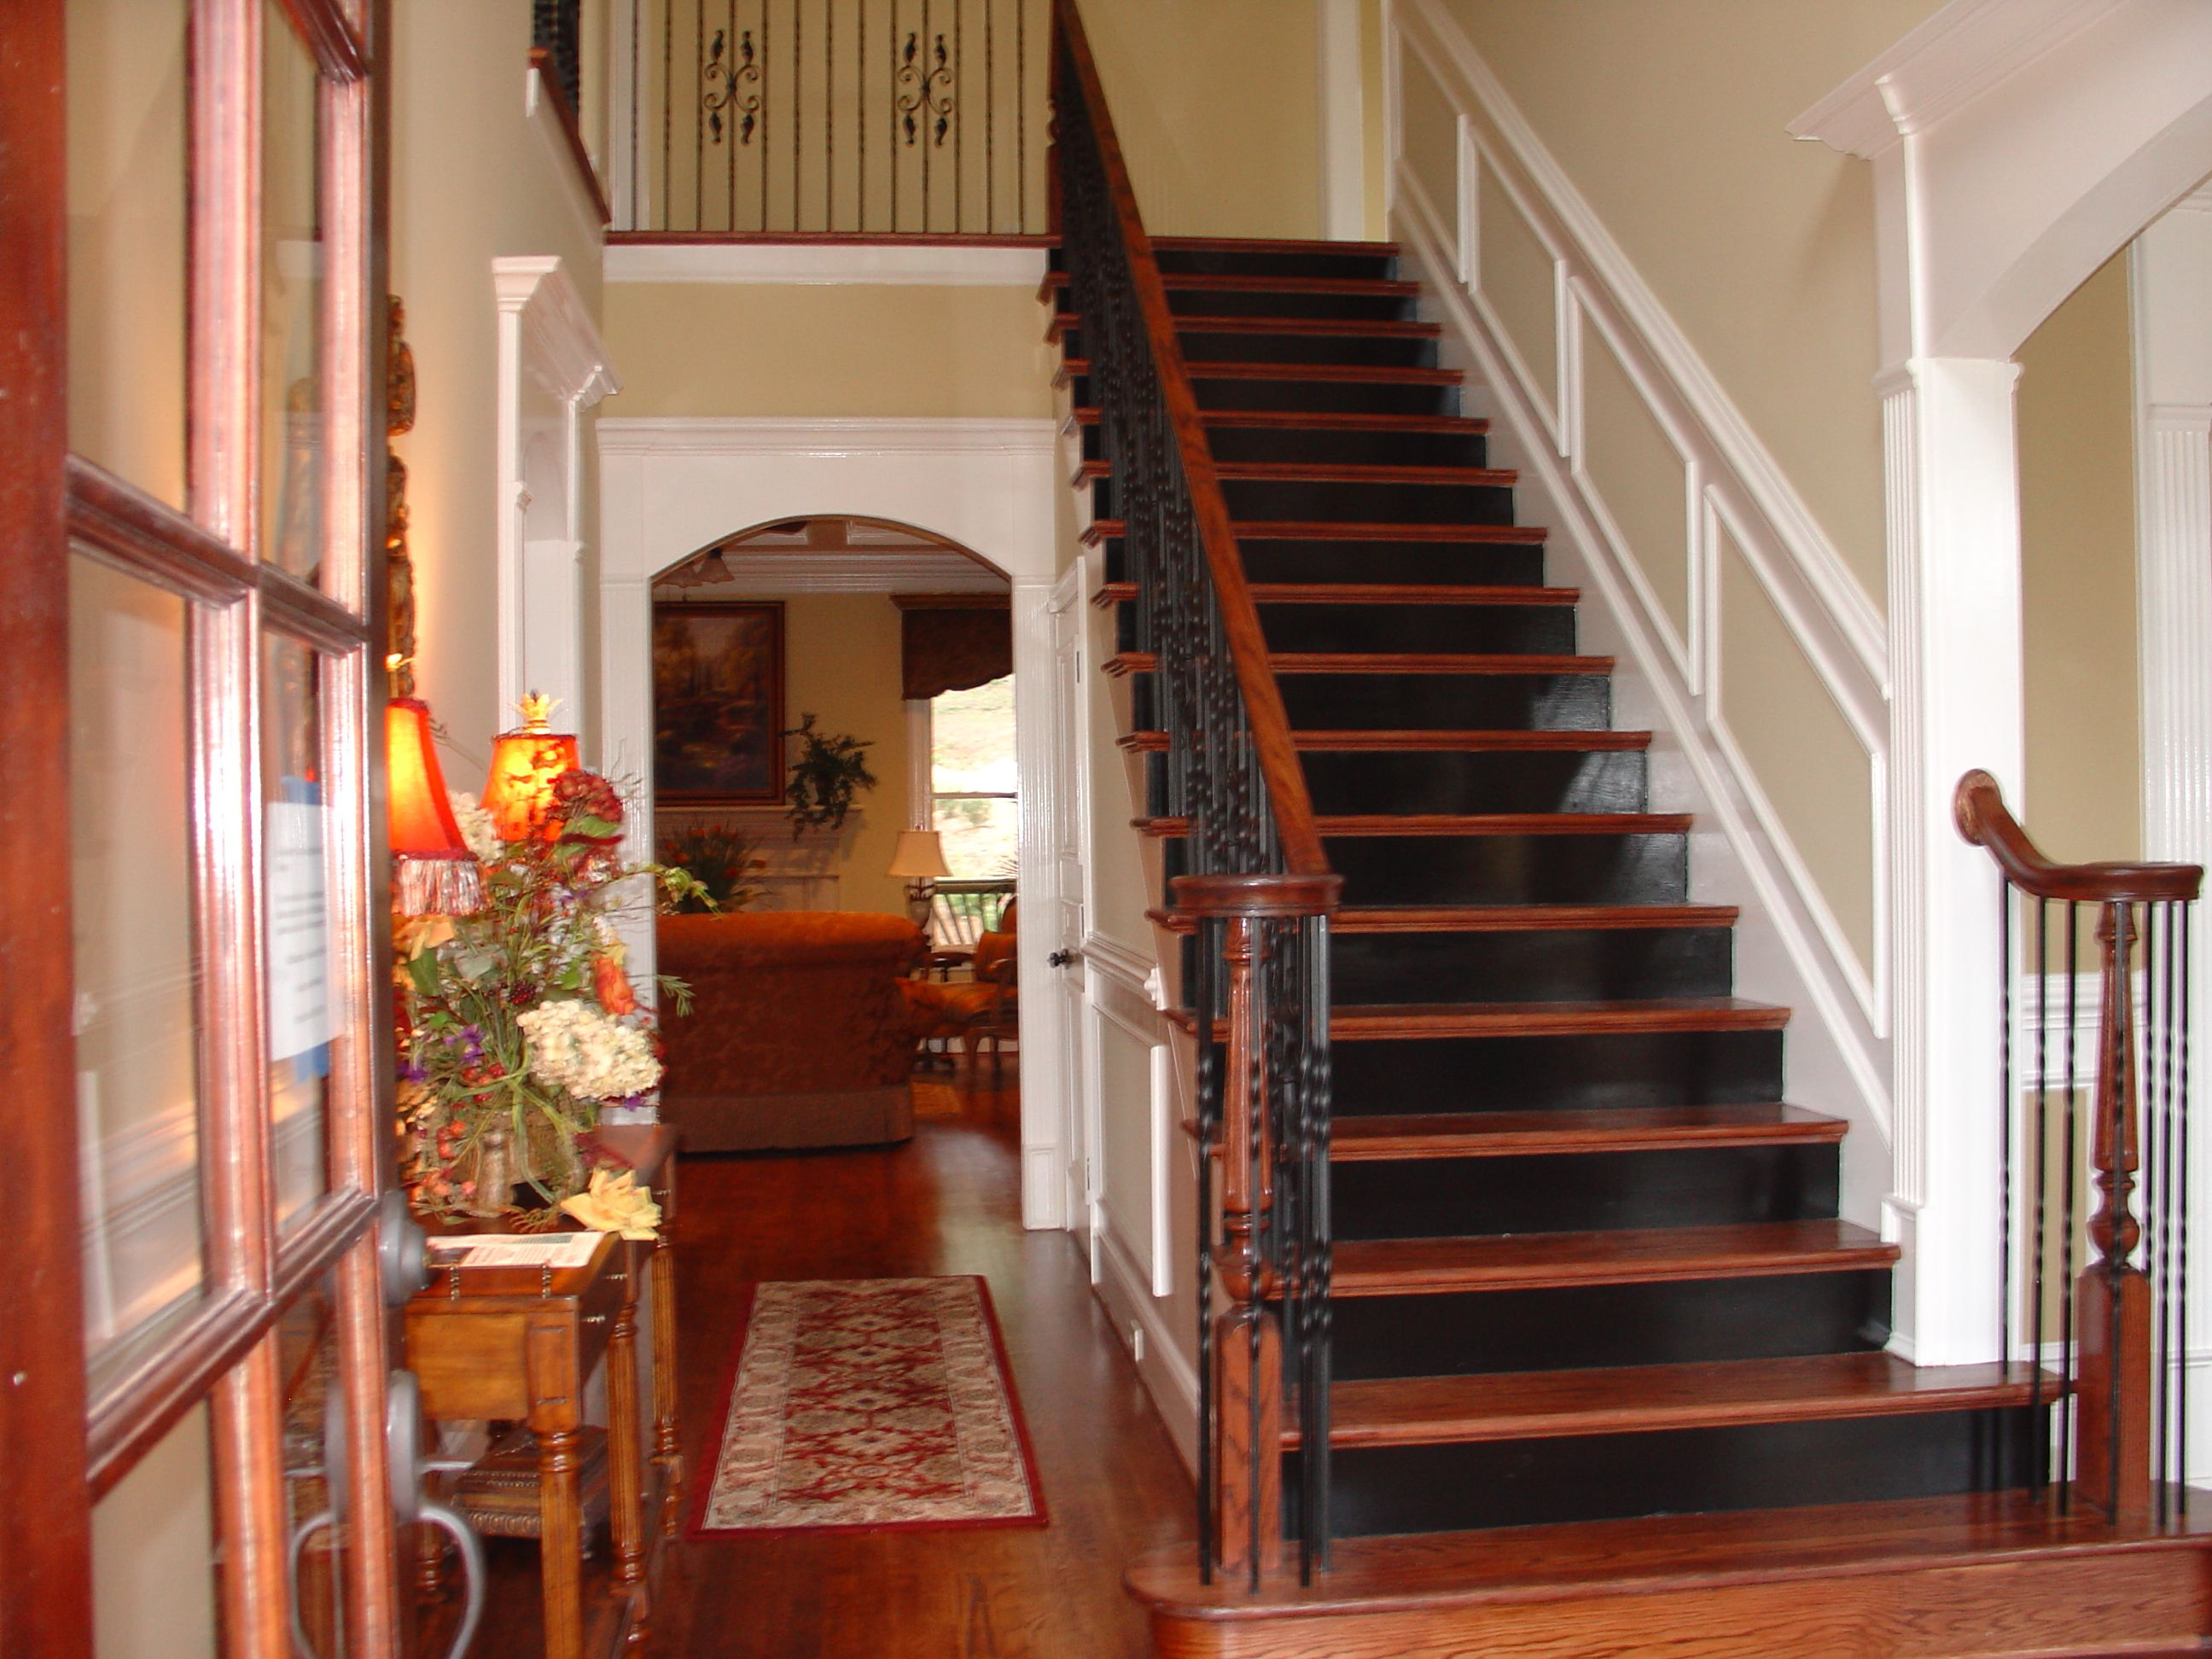 Painted Wood Stairs Foyer With Black Stair Risers Homes I Built Pinterest Black